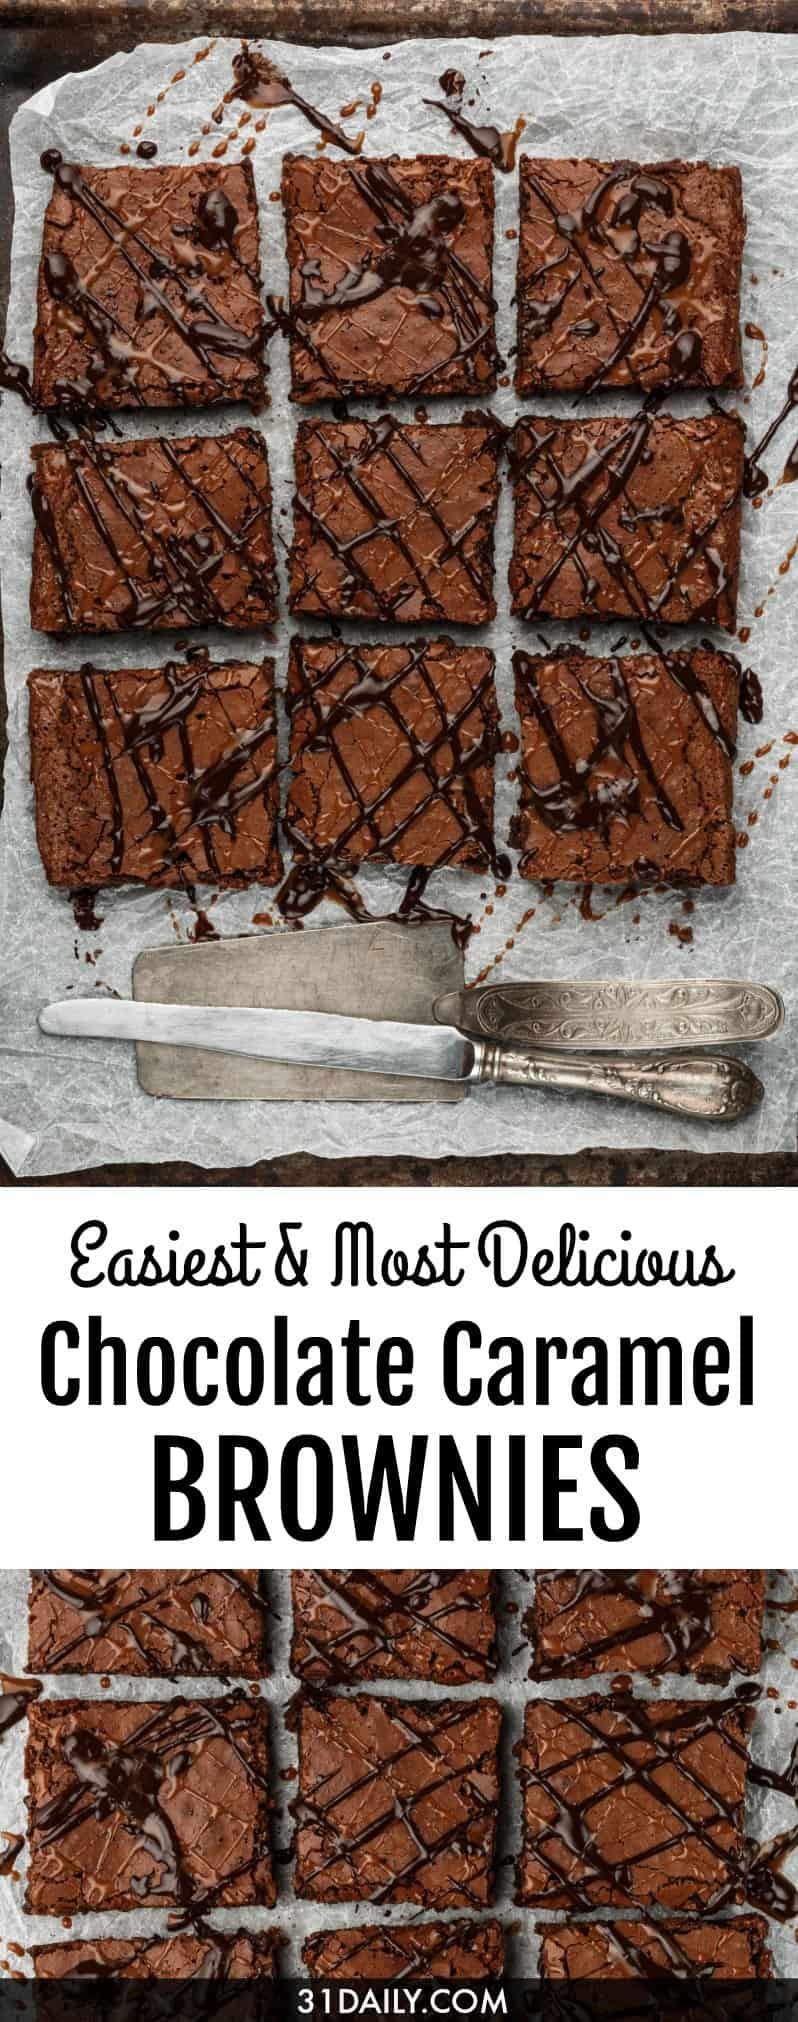 Easy Dark Chocolate Caramel Brownies | 31Daily.com